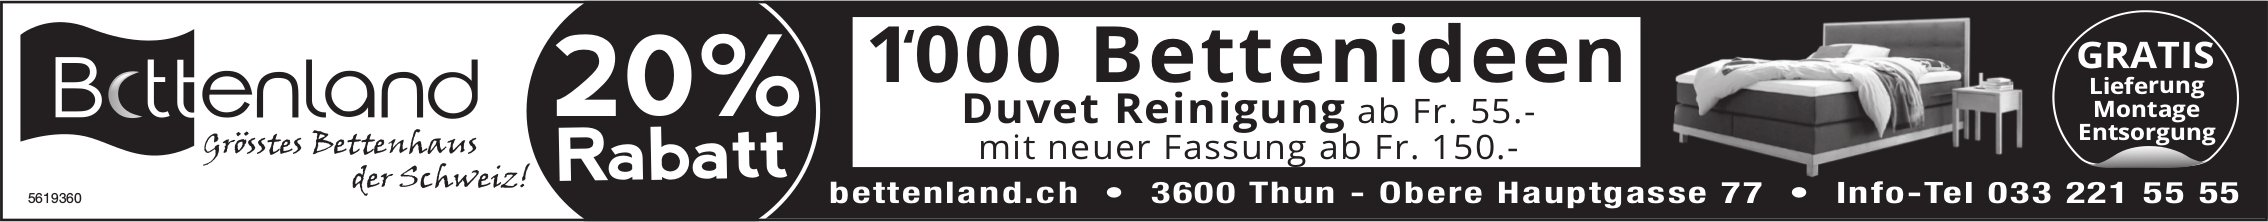 Bettenland, Thun - 20% Rabatt, 1000 Bettideen